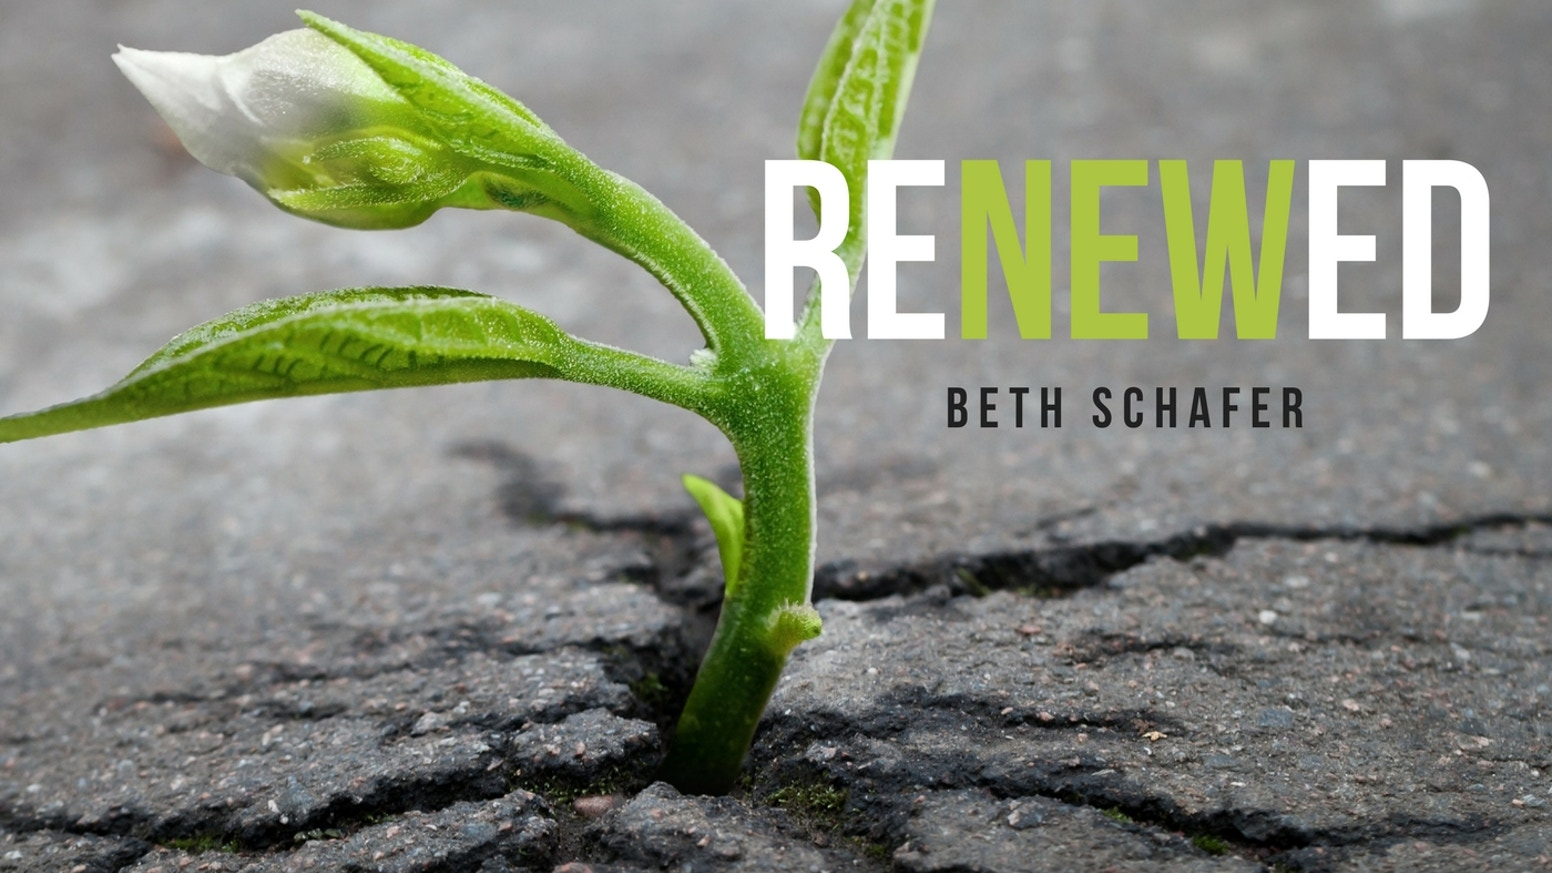 Be a Part of Beth Schafer's next Album - RENEWED by Beth